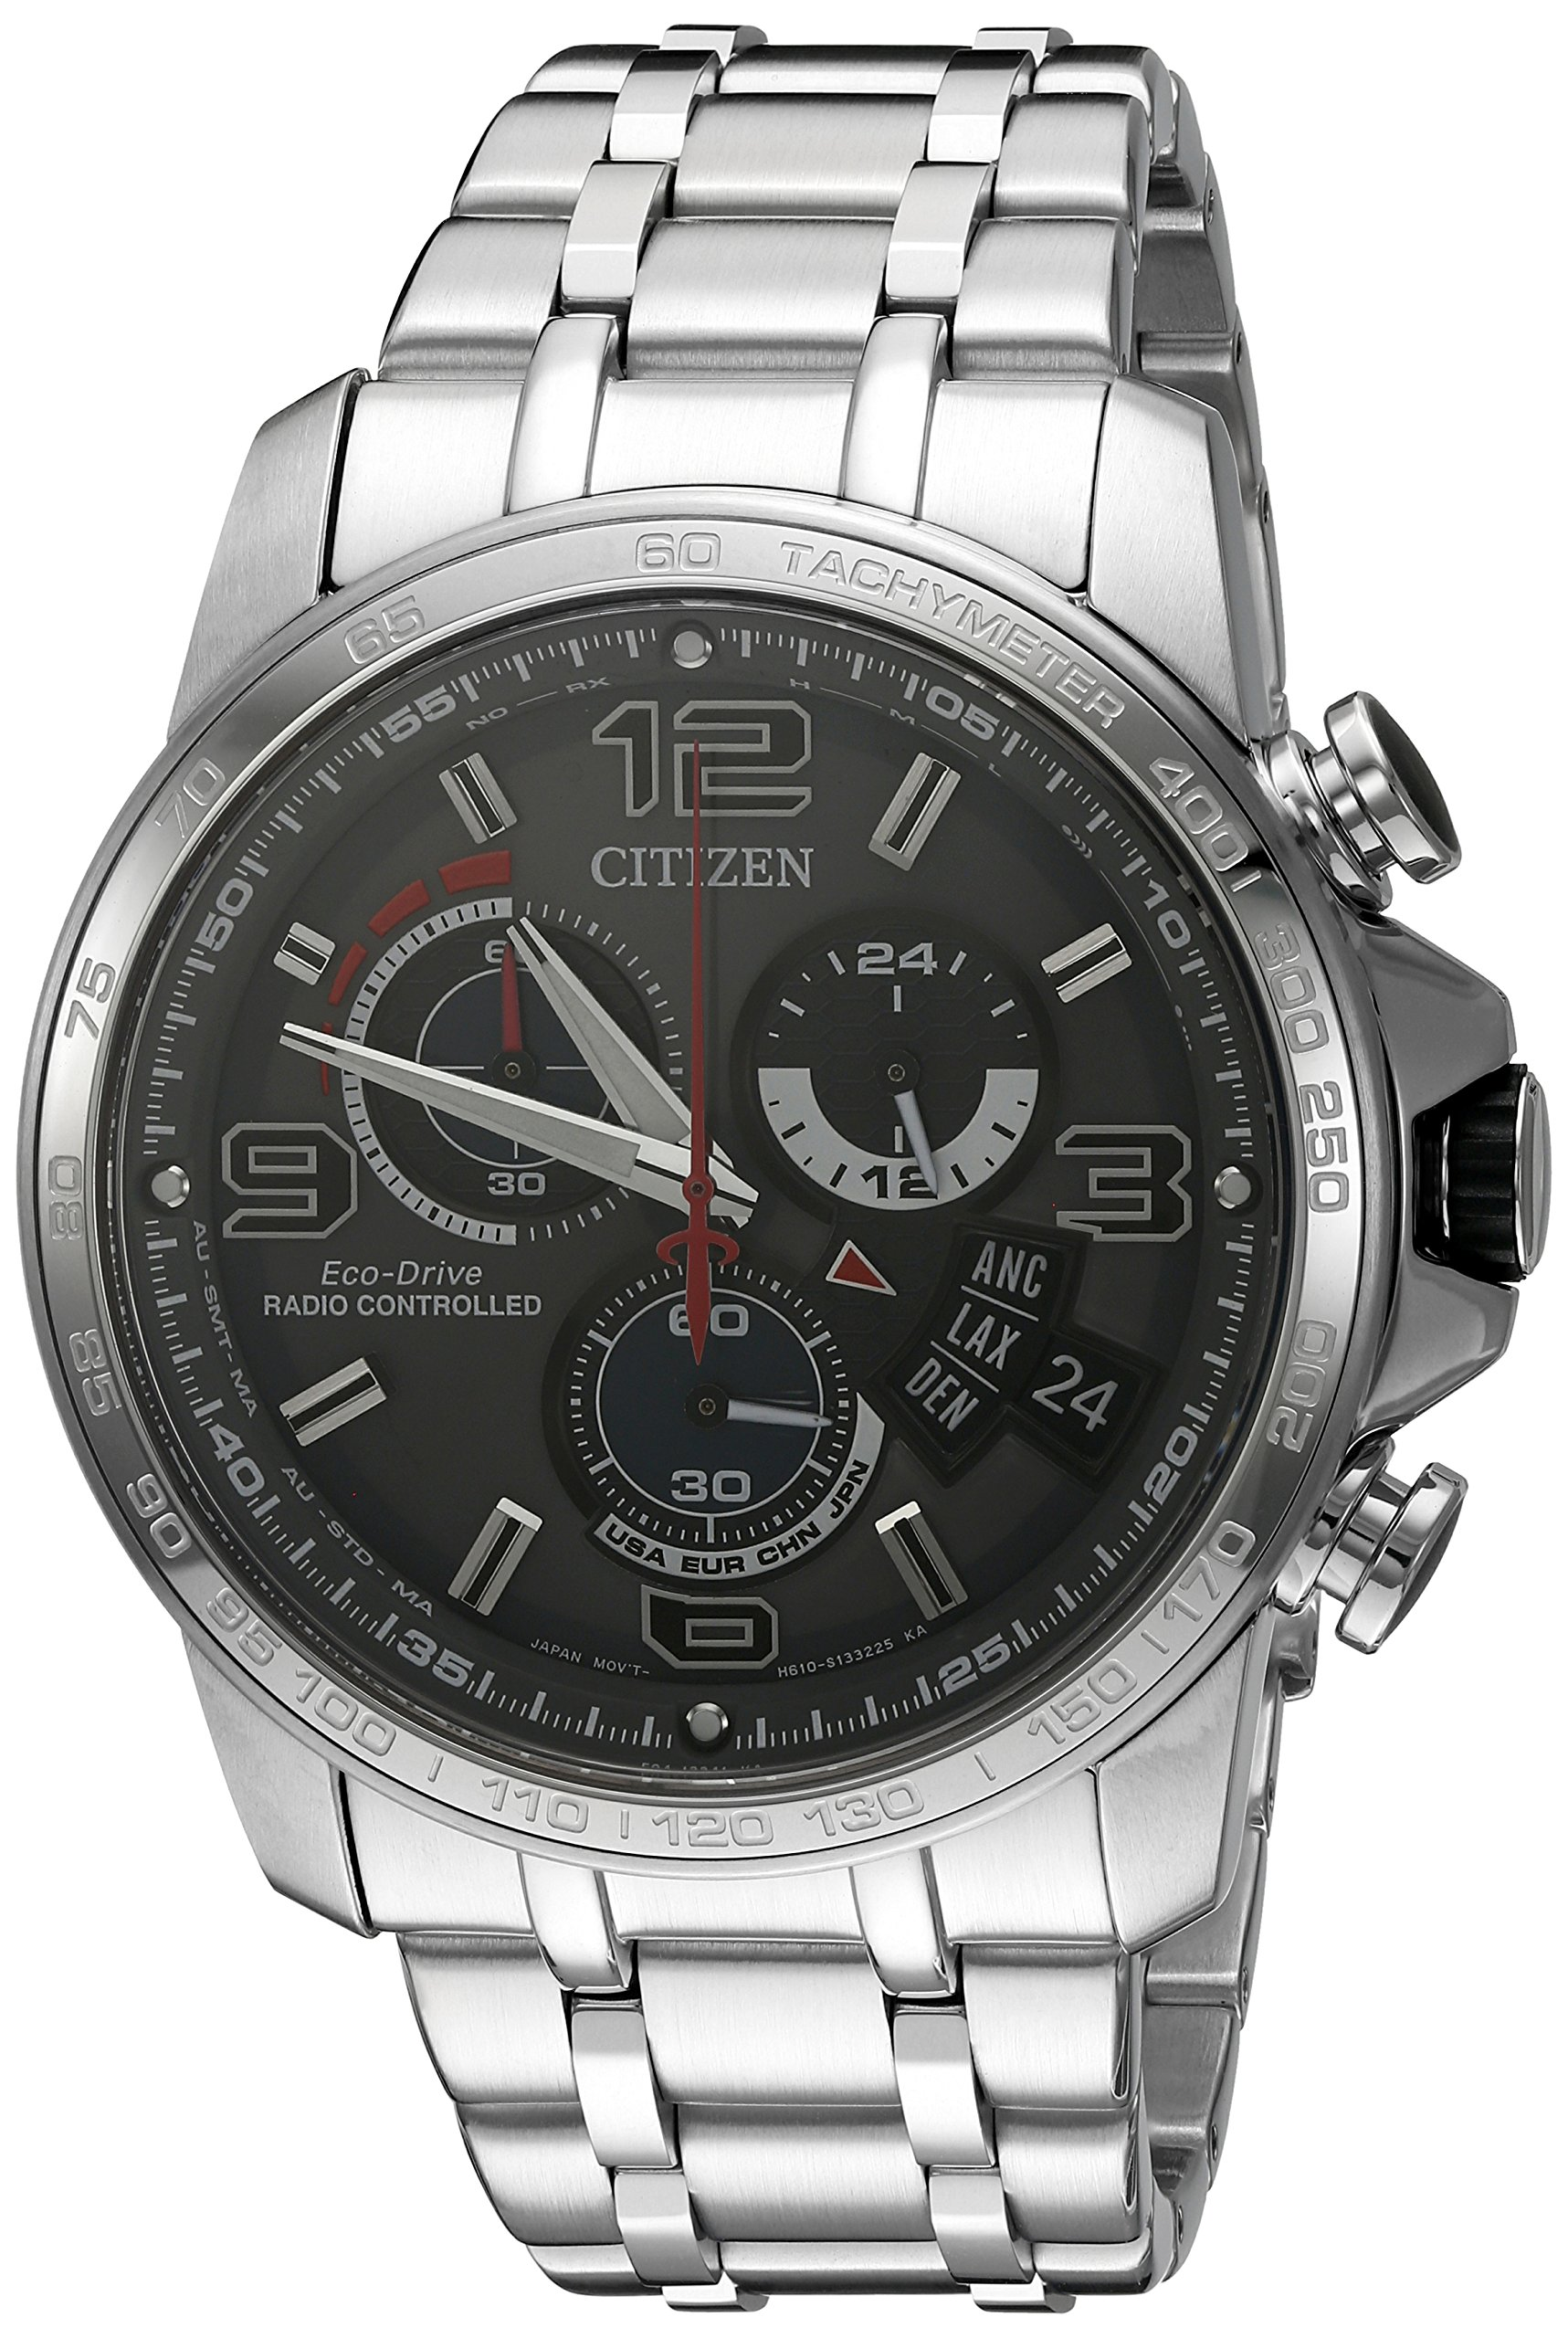 Citizen Chrono Time AT Stainless Steel Mens Watch BY0100-51H